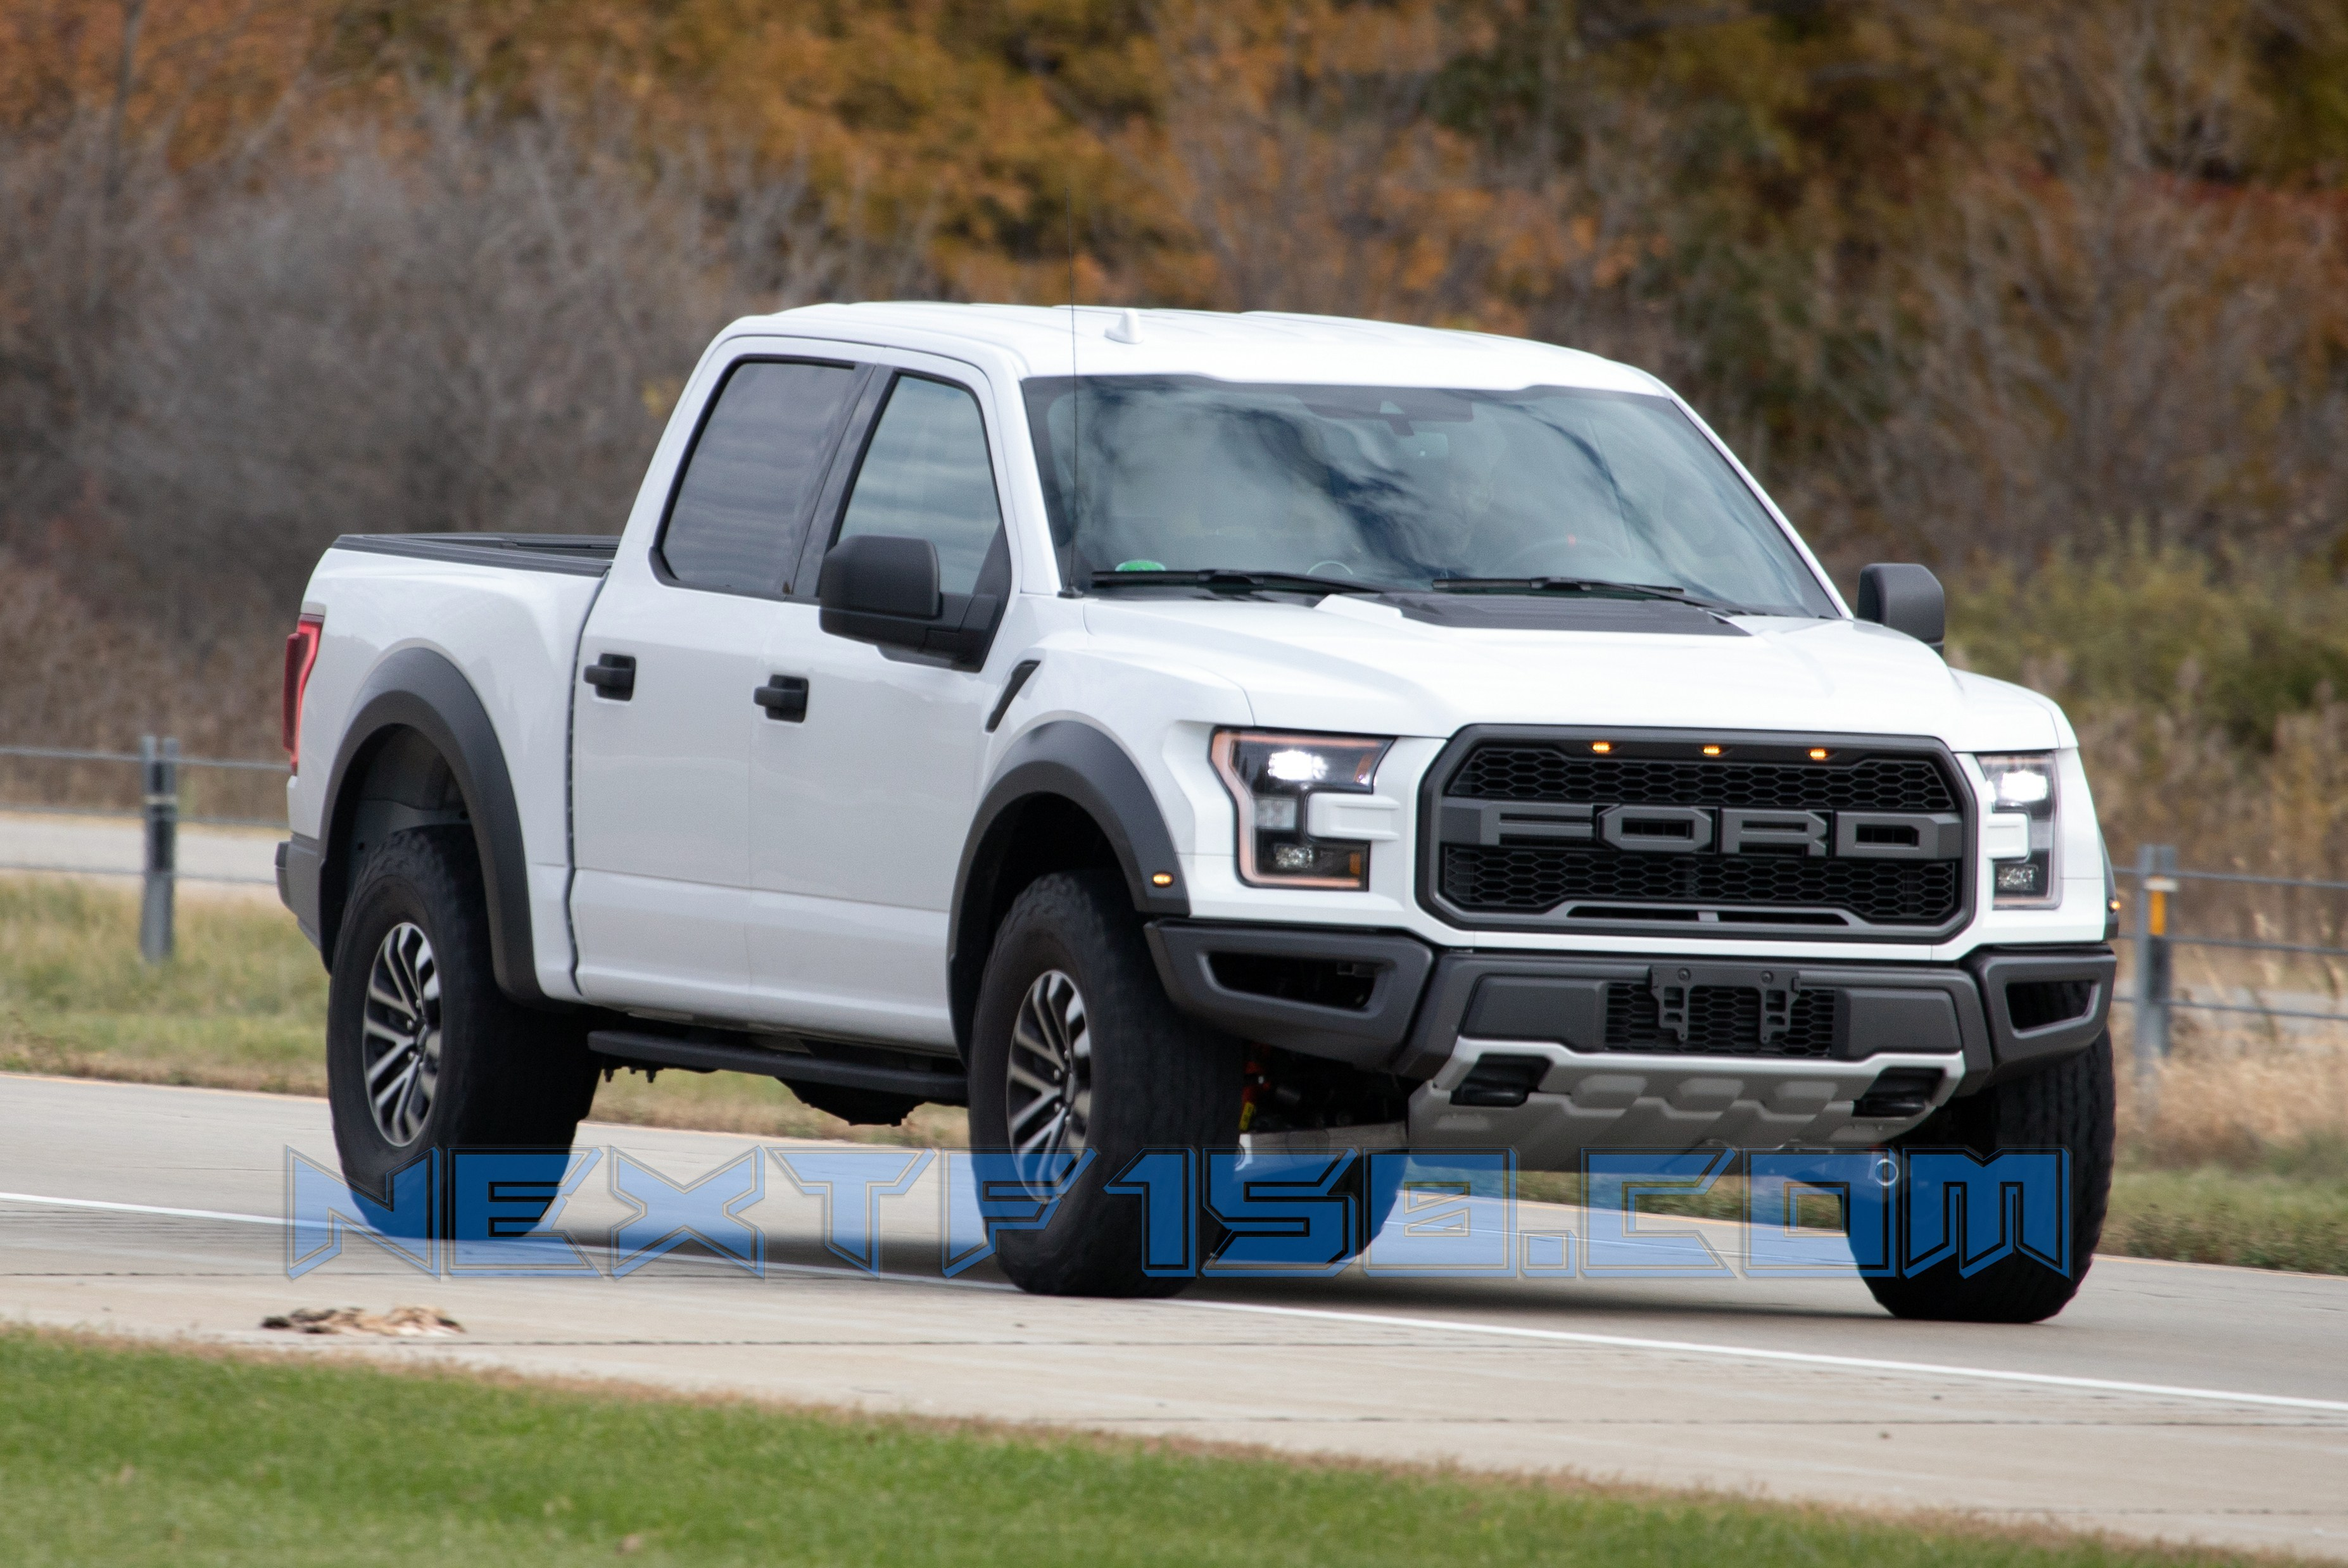 65 Best 2020 Ford F150 Raptor Price Design and Review